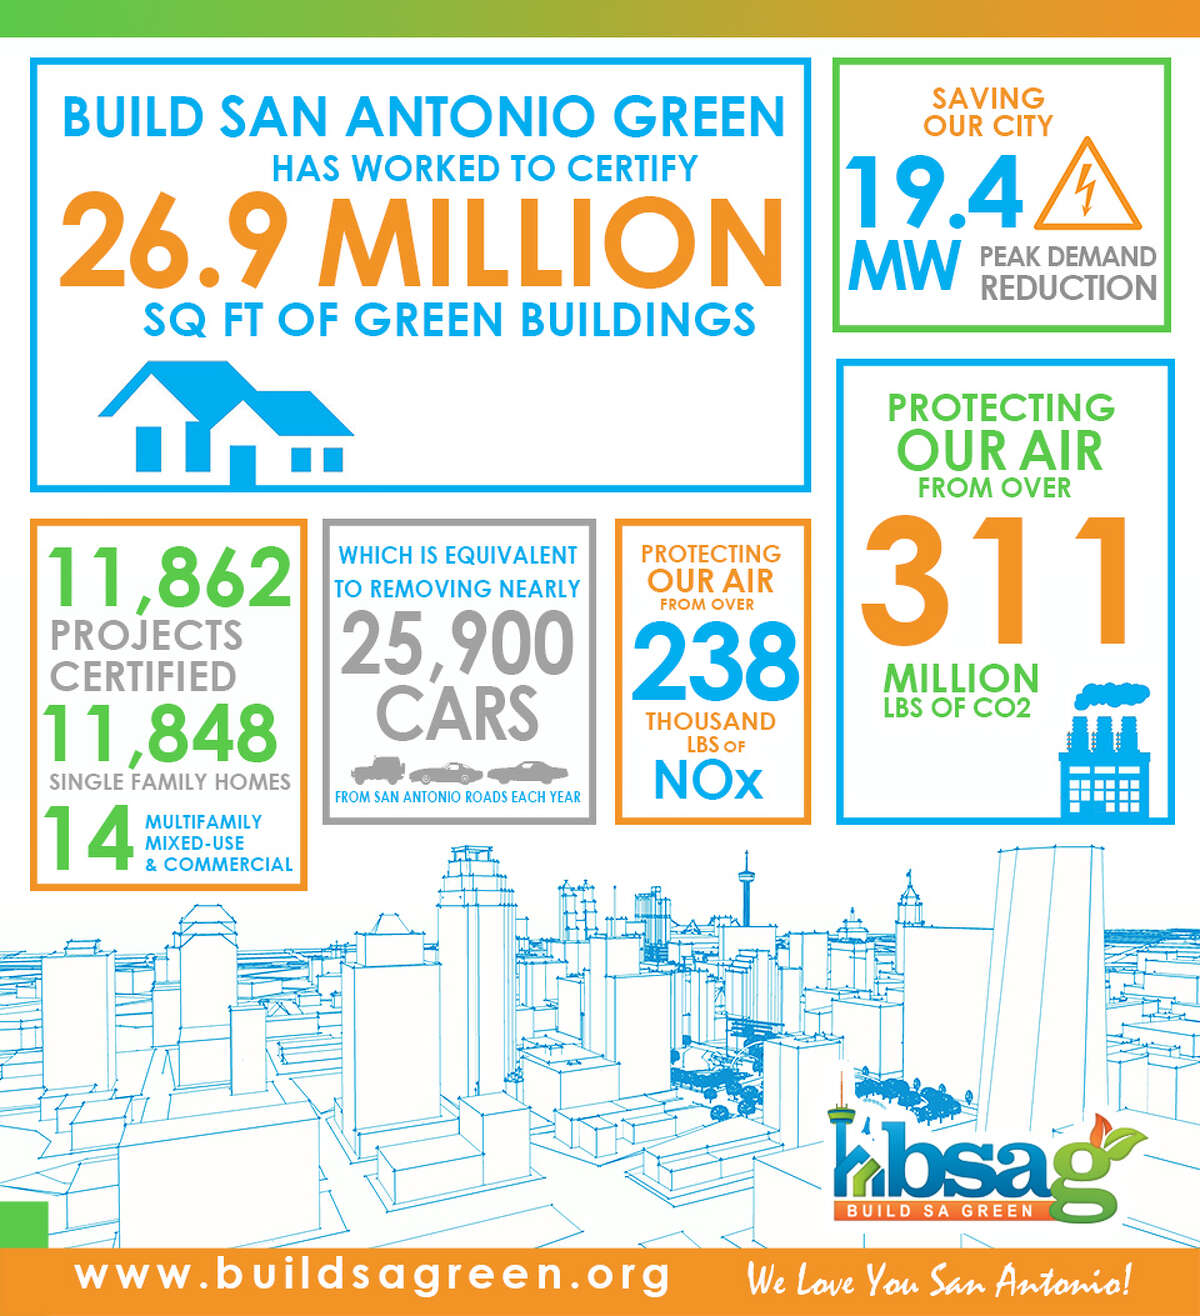 Build San Antonio Green offers a retrofit certification program that measures the percentage of improvement before and after a home renovation.